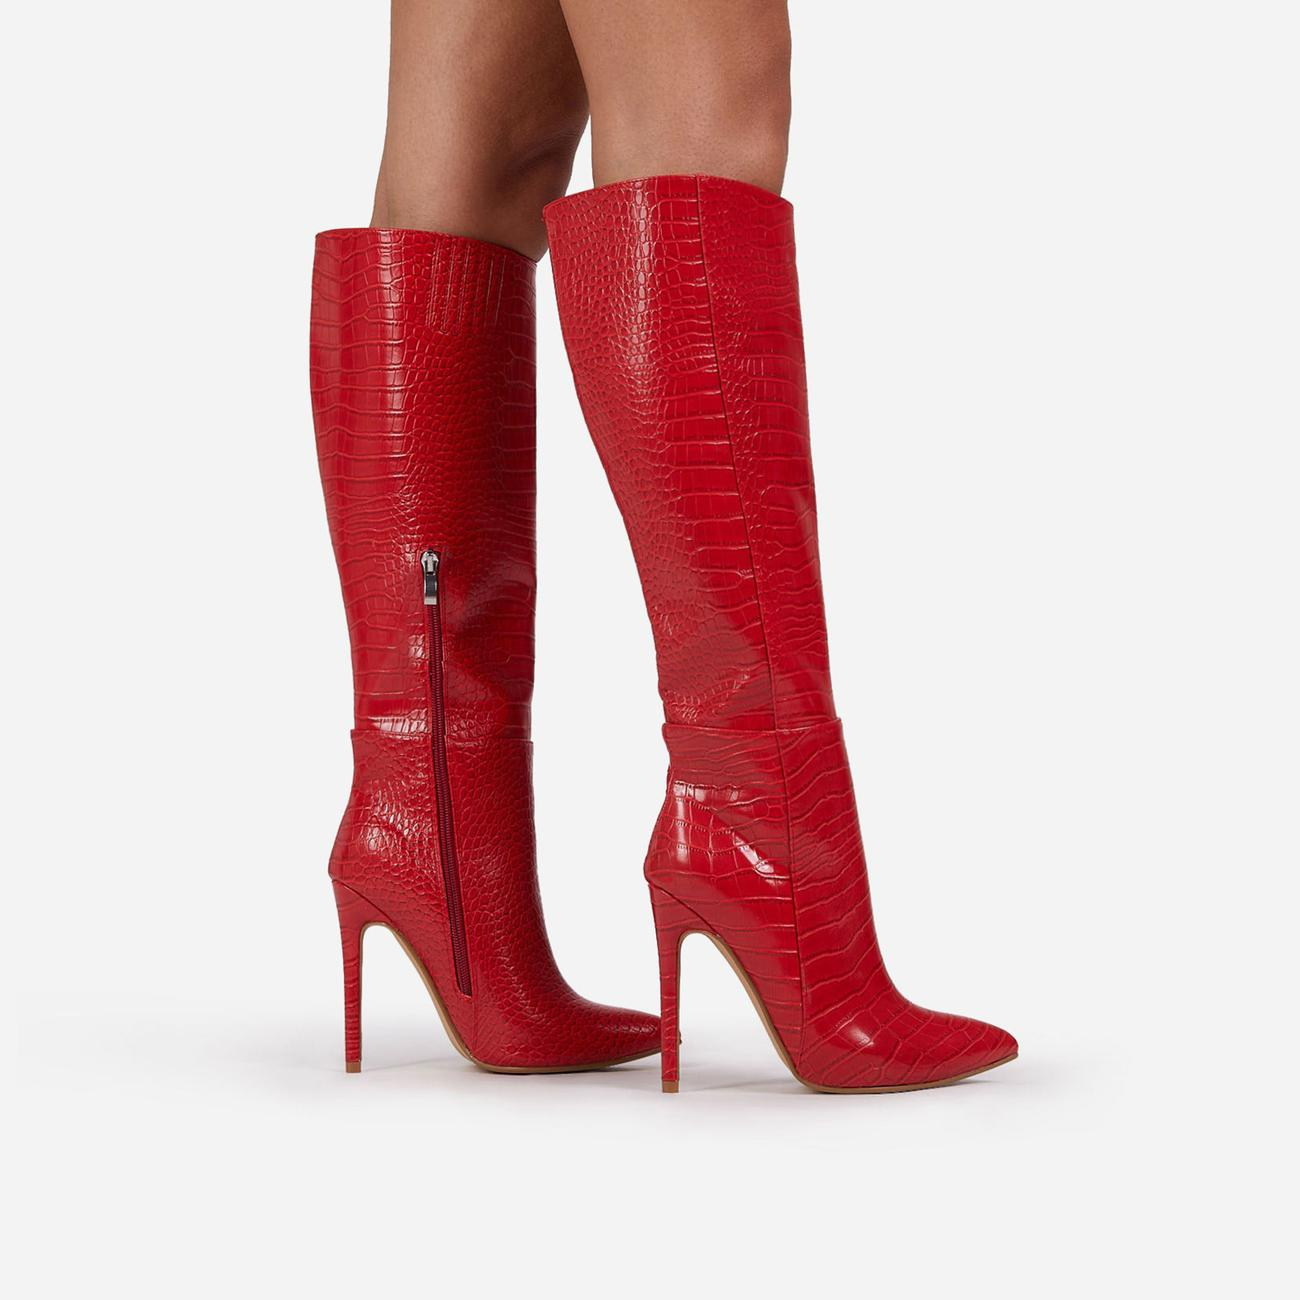 Rose Knee High Long Boot In Red Croc Print Faux Leather Image 3